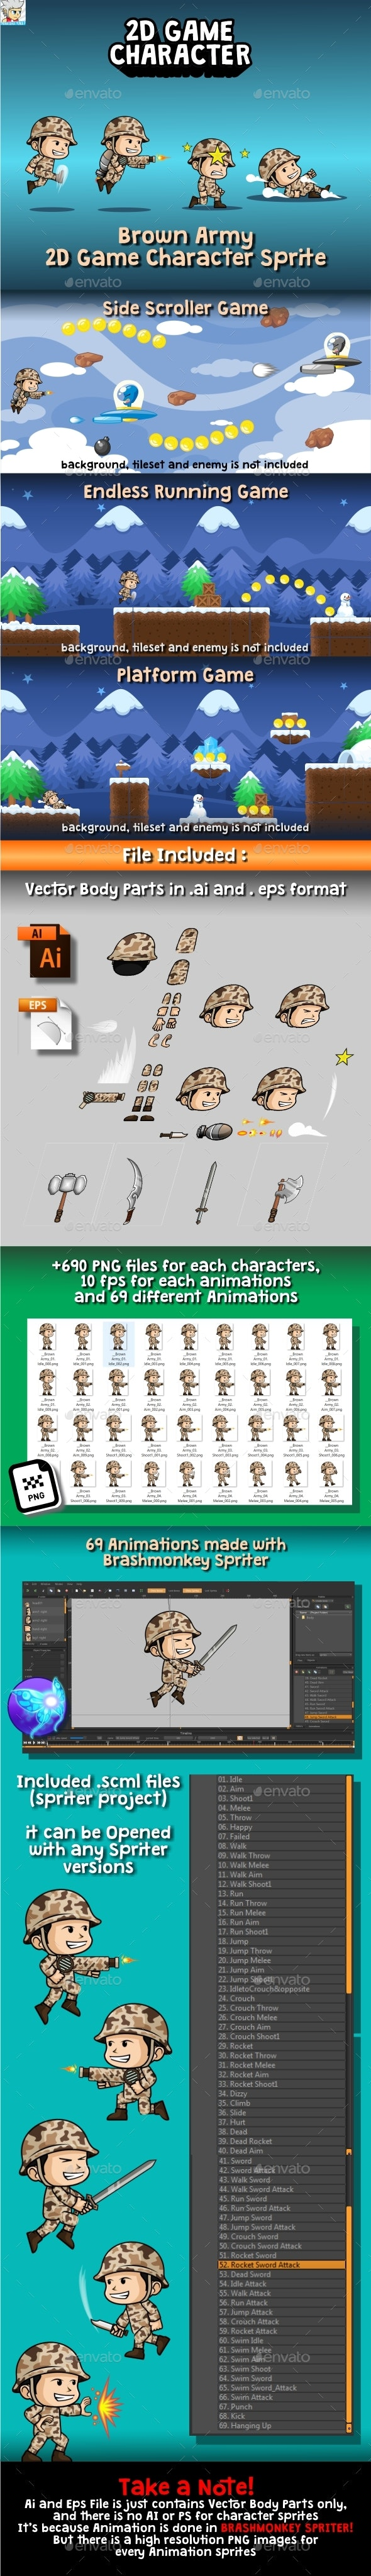 Brown Army 2D Game Character Sprite - Sprites Game Assets